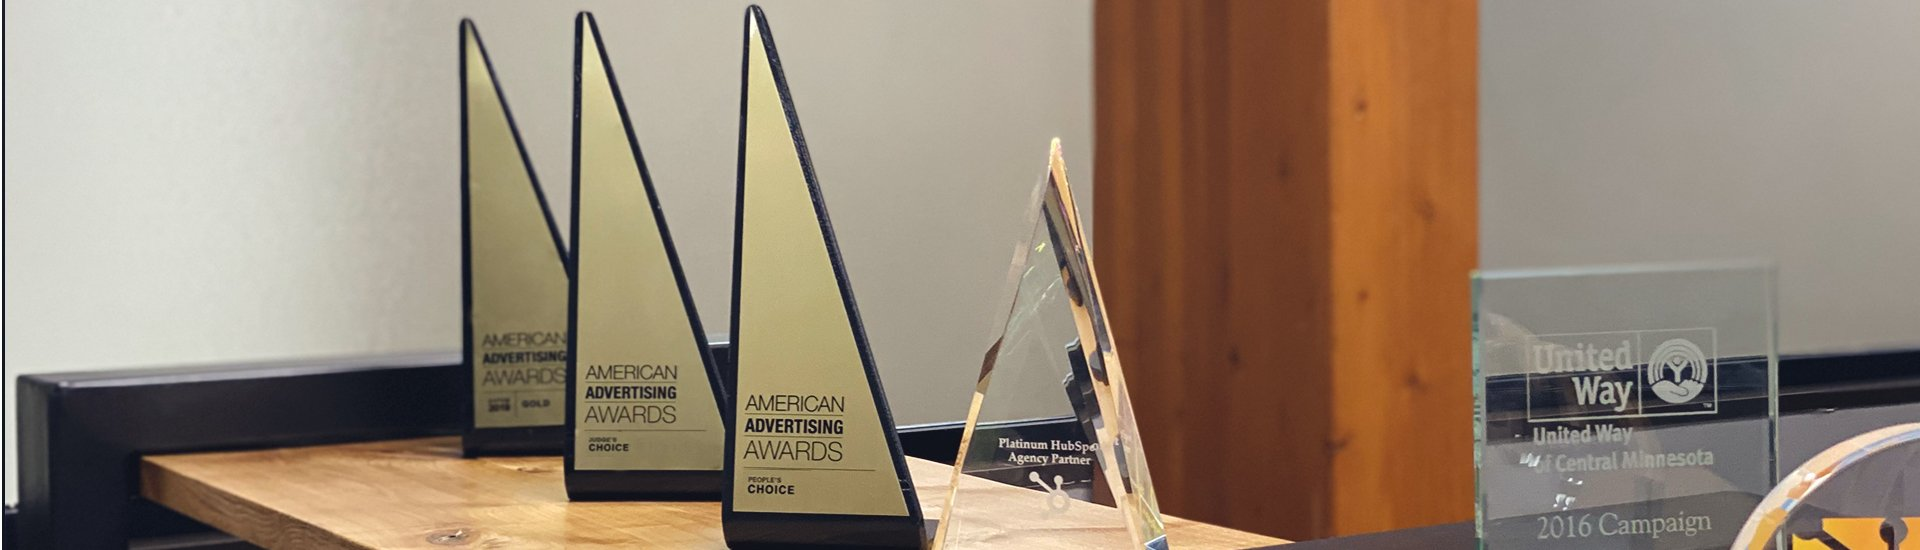 Vye Wins Judge's Choice, 3 Gold, and 7 Silver Awards in the 2021 American Advertising Awards